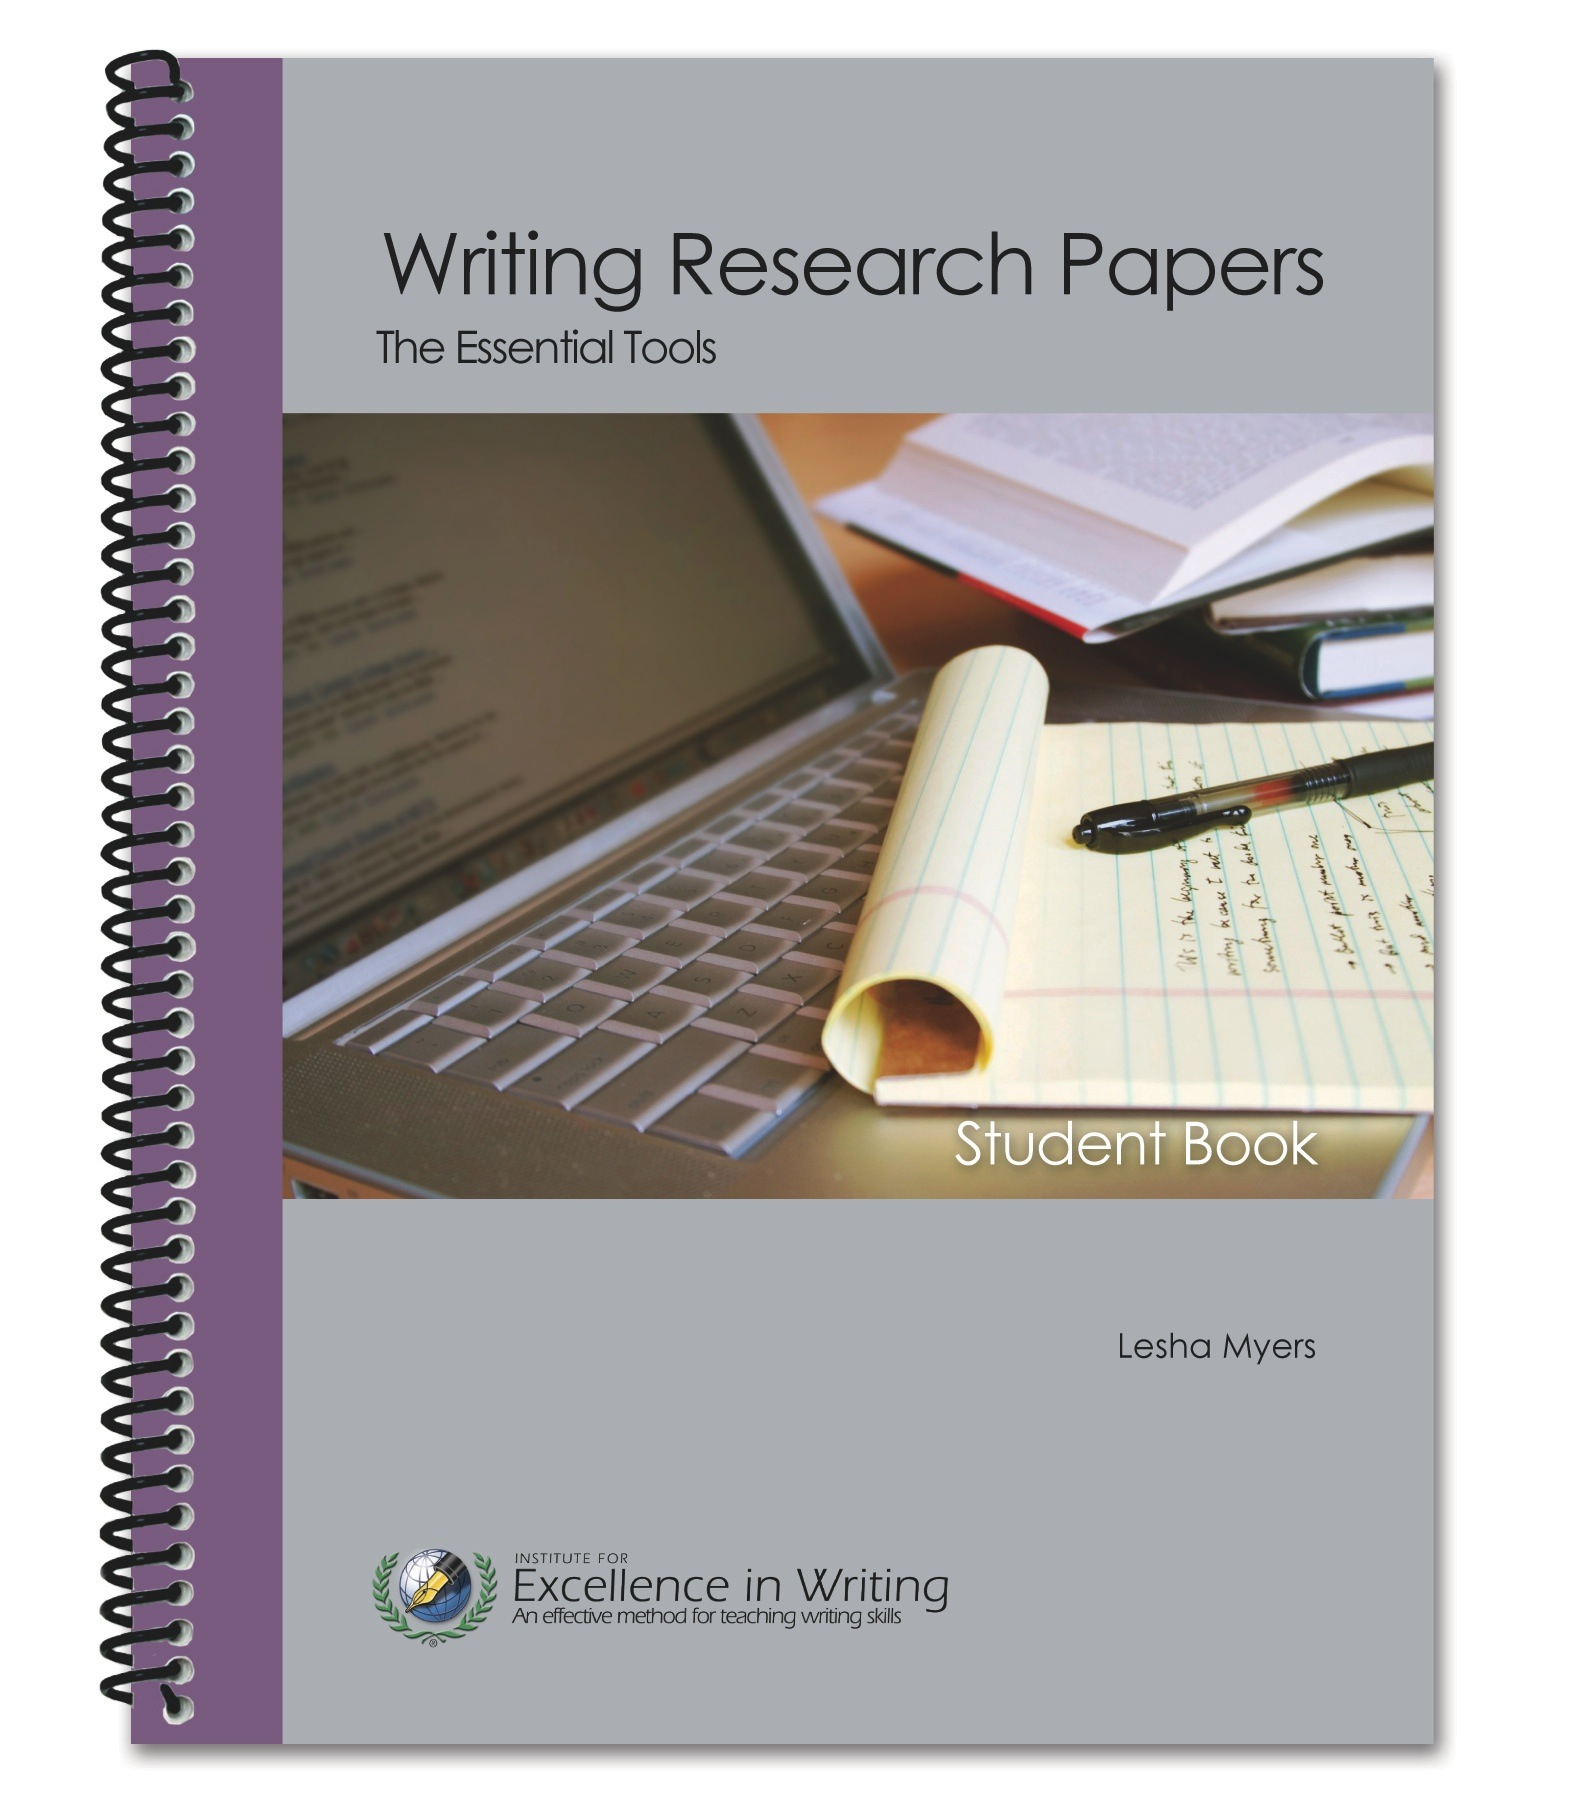 iew writing research papers